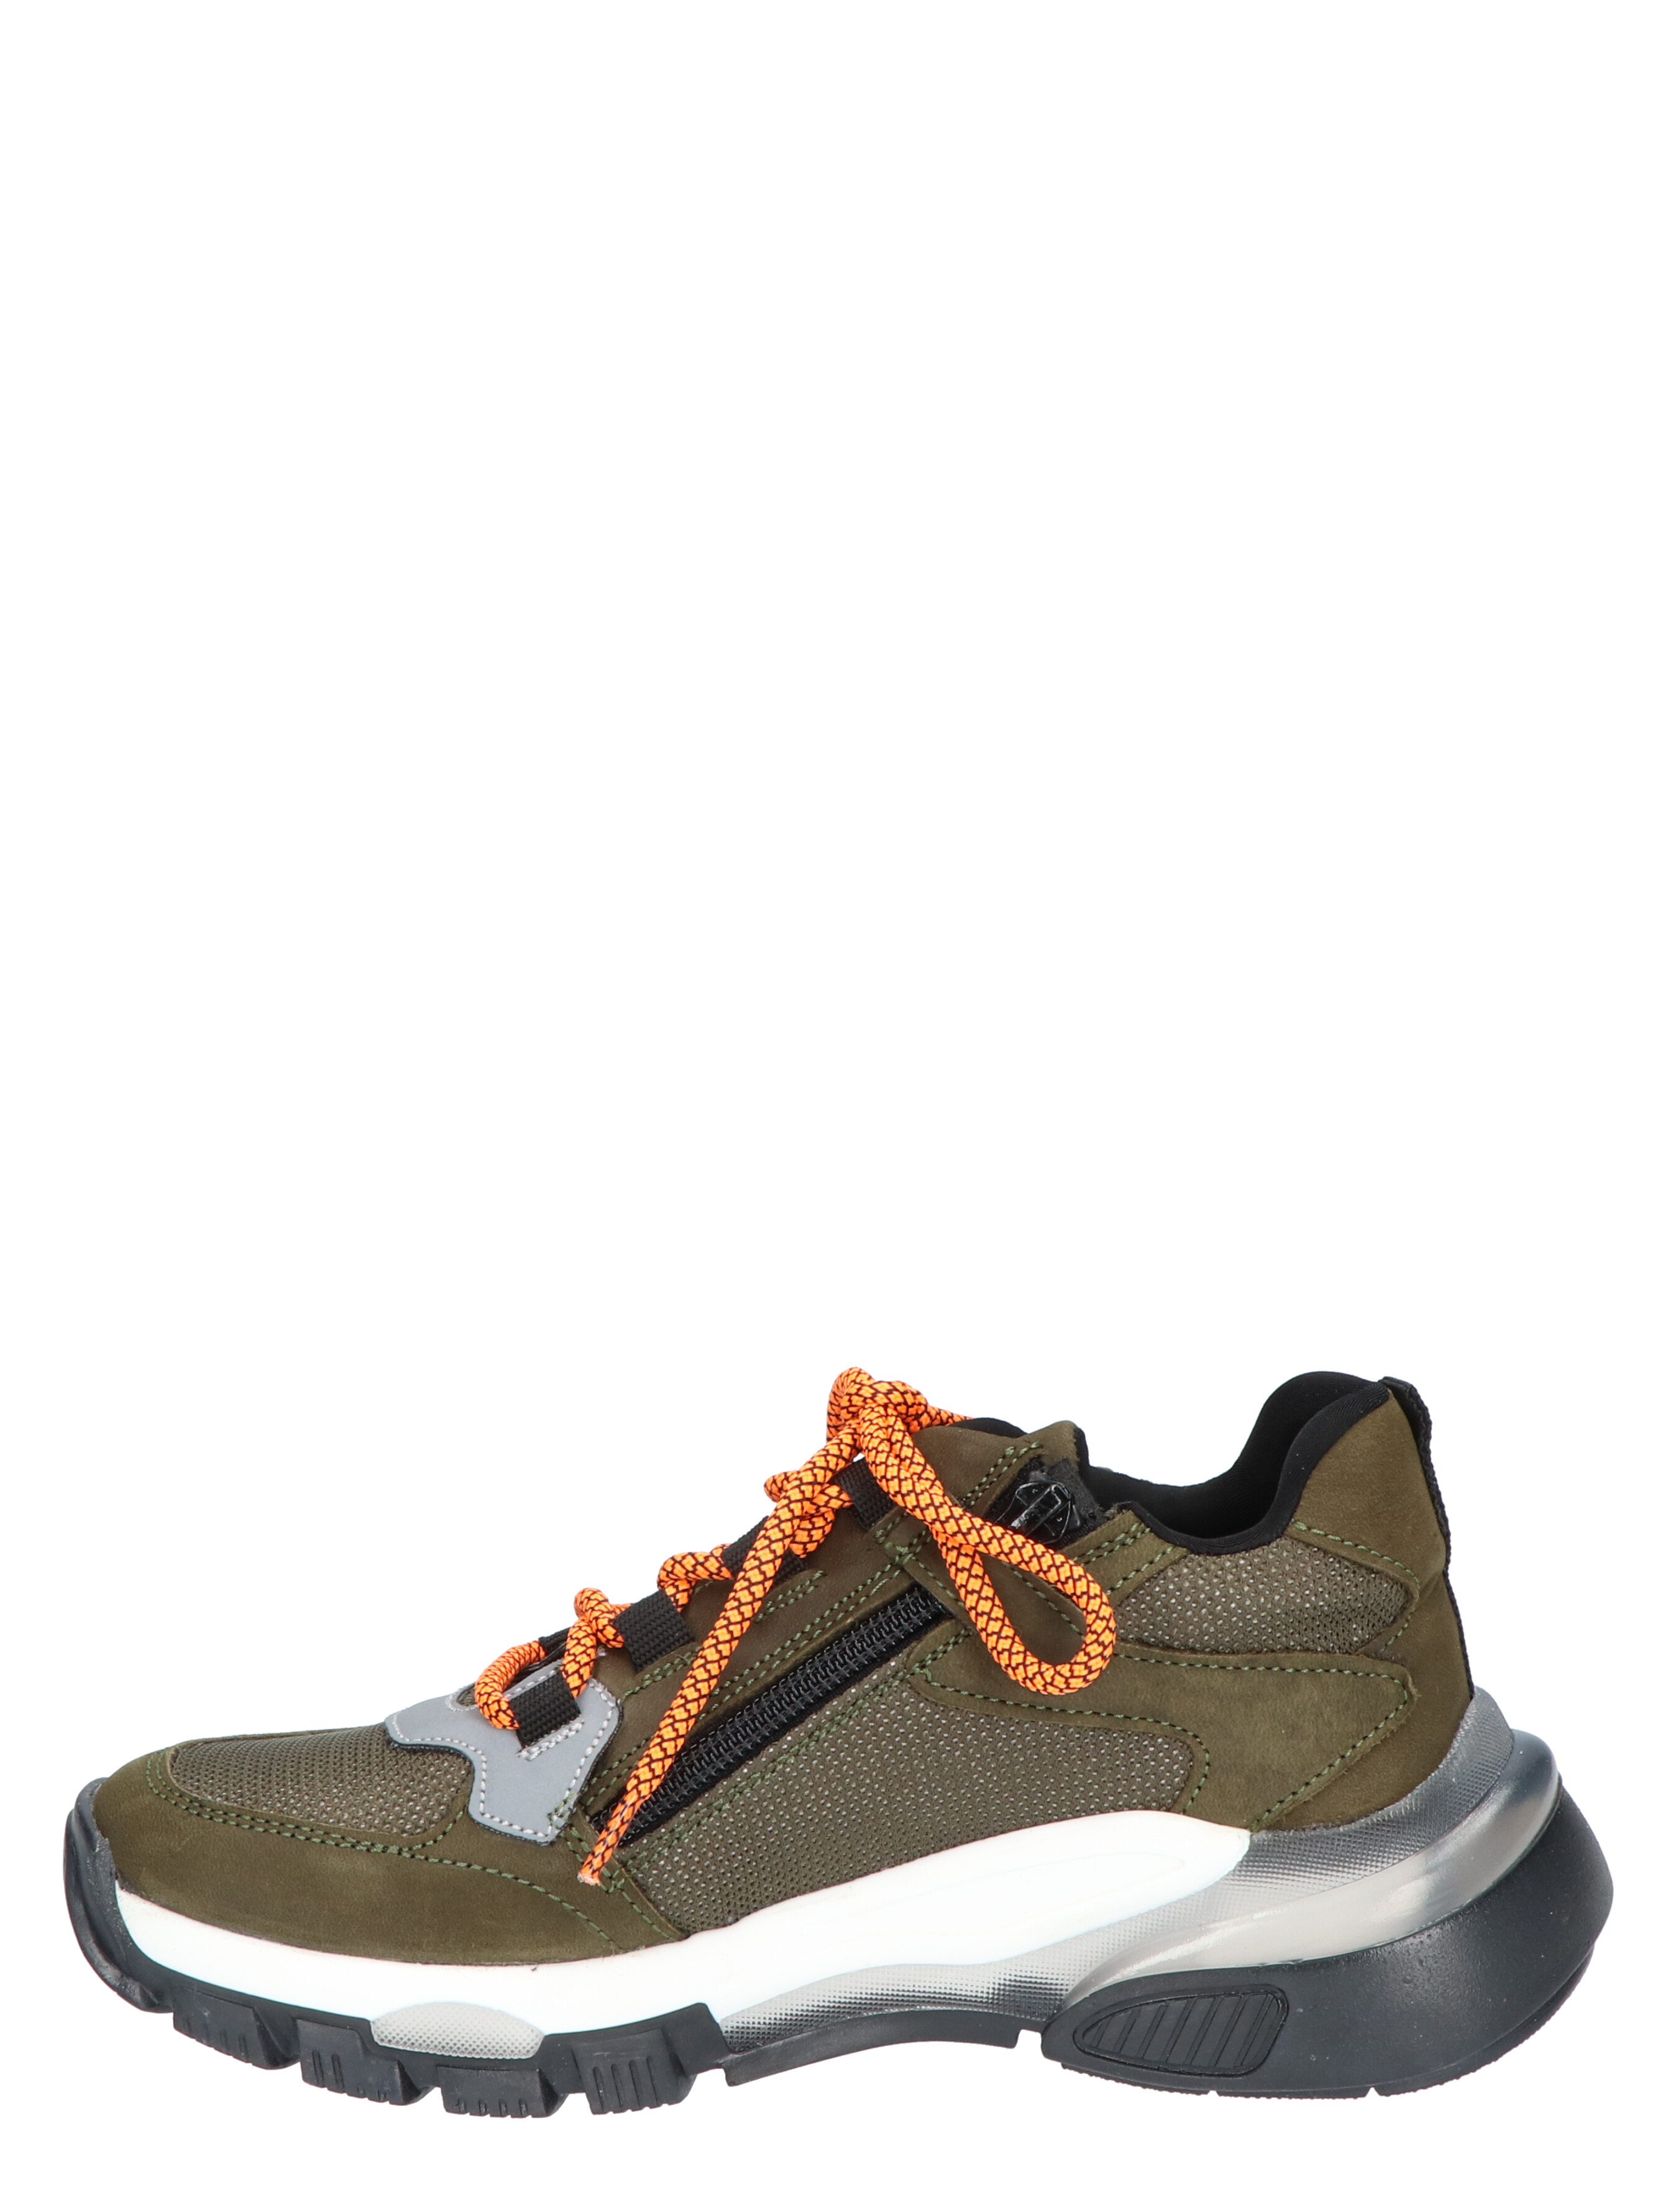 Braqeez Gio Genna Army Green Sneakers hoge-sneakers